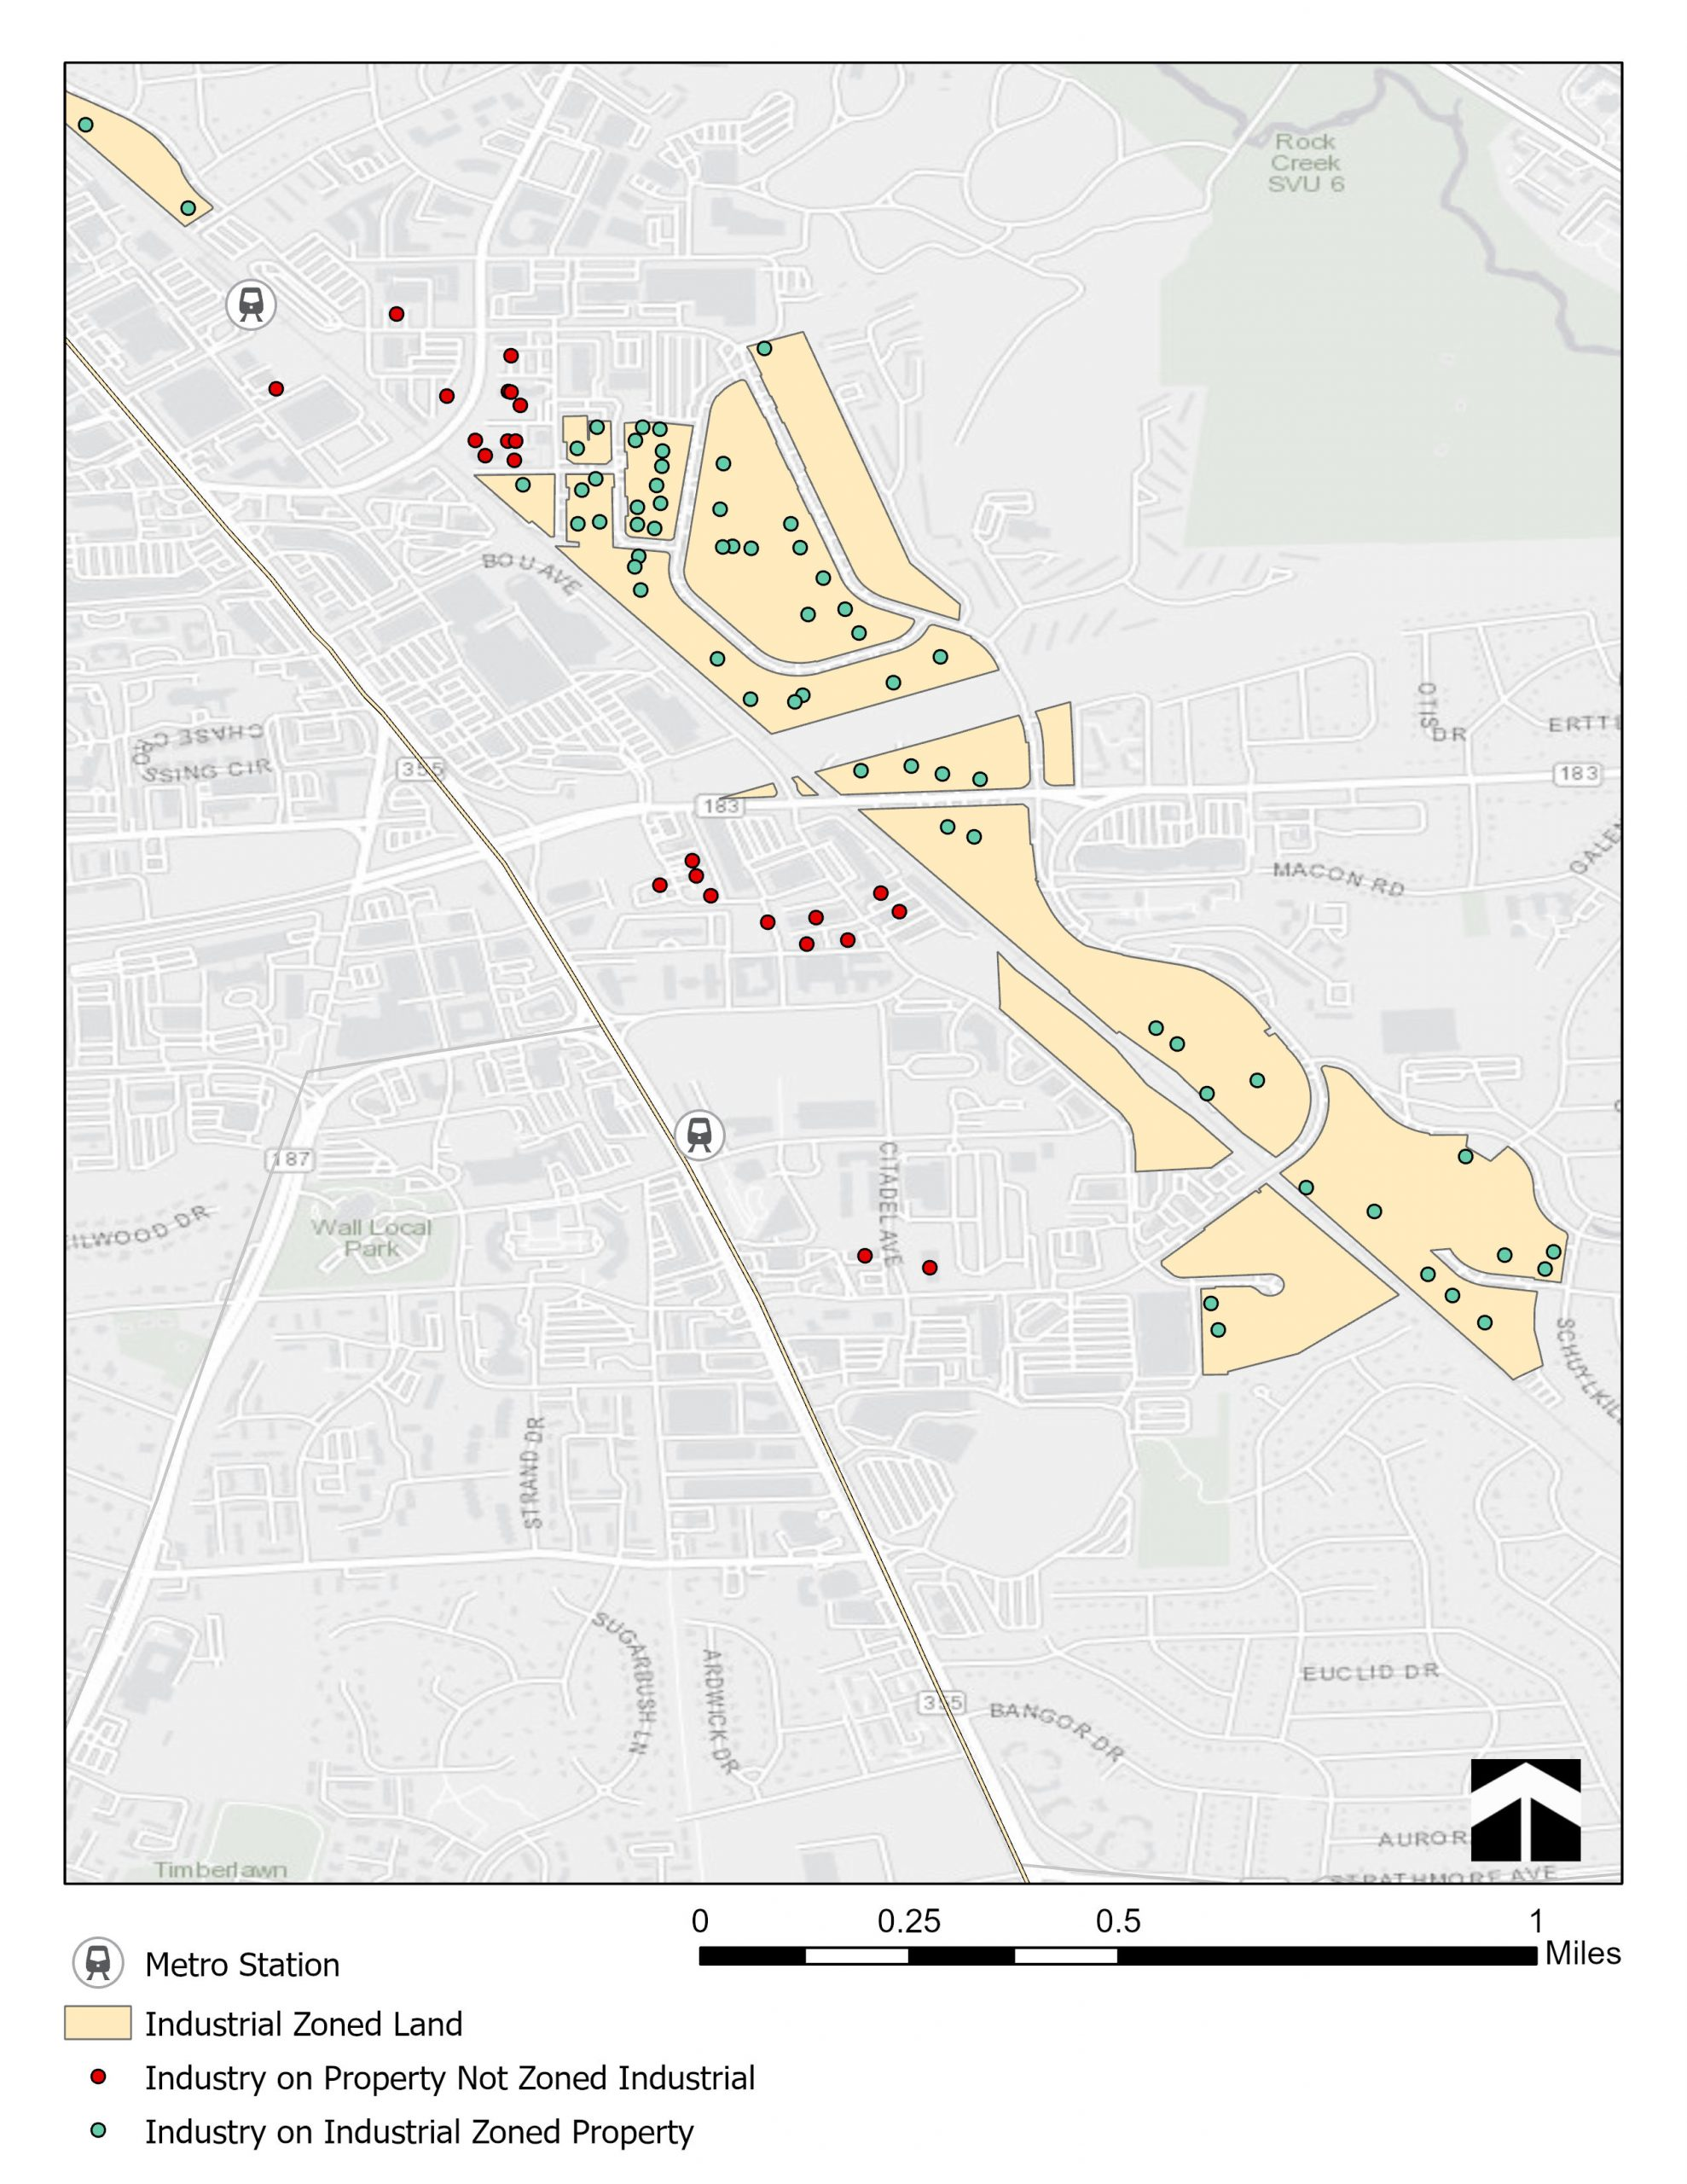 Map of the Twinbrook/White Flint industrial cluster showing industrial zoned land, and industrial properties. Industrial properties that are not zoned for industry are suseptible to redeveloment and are closest to the Metro stations.